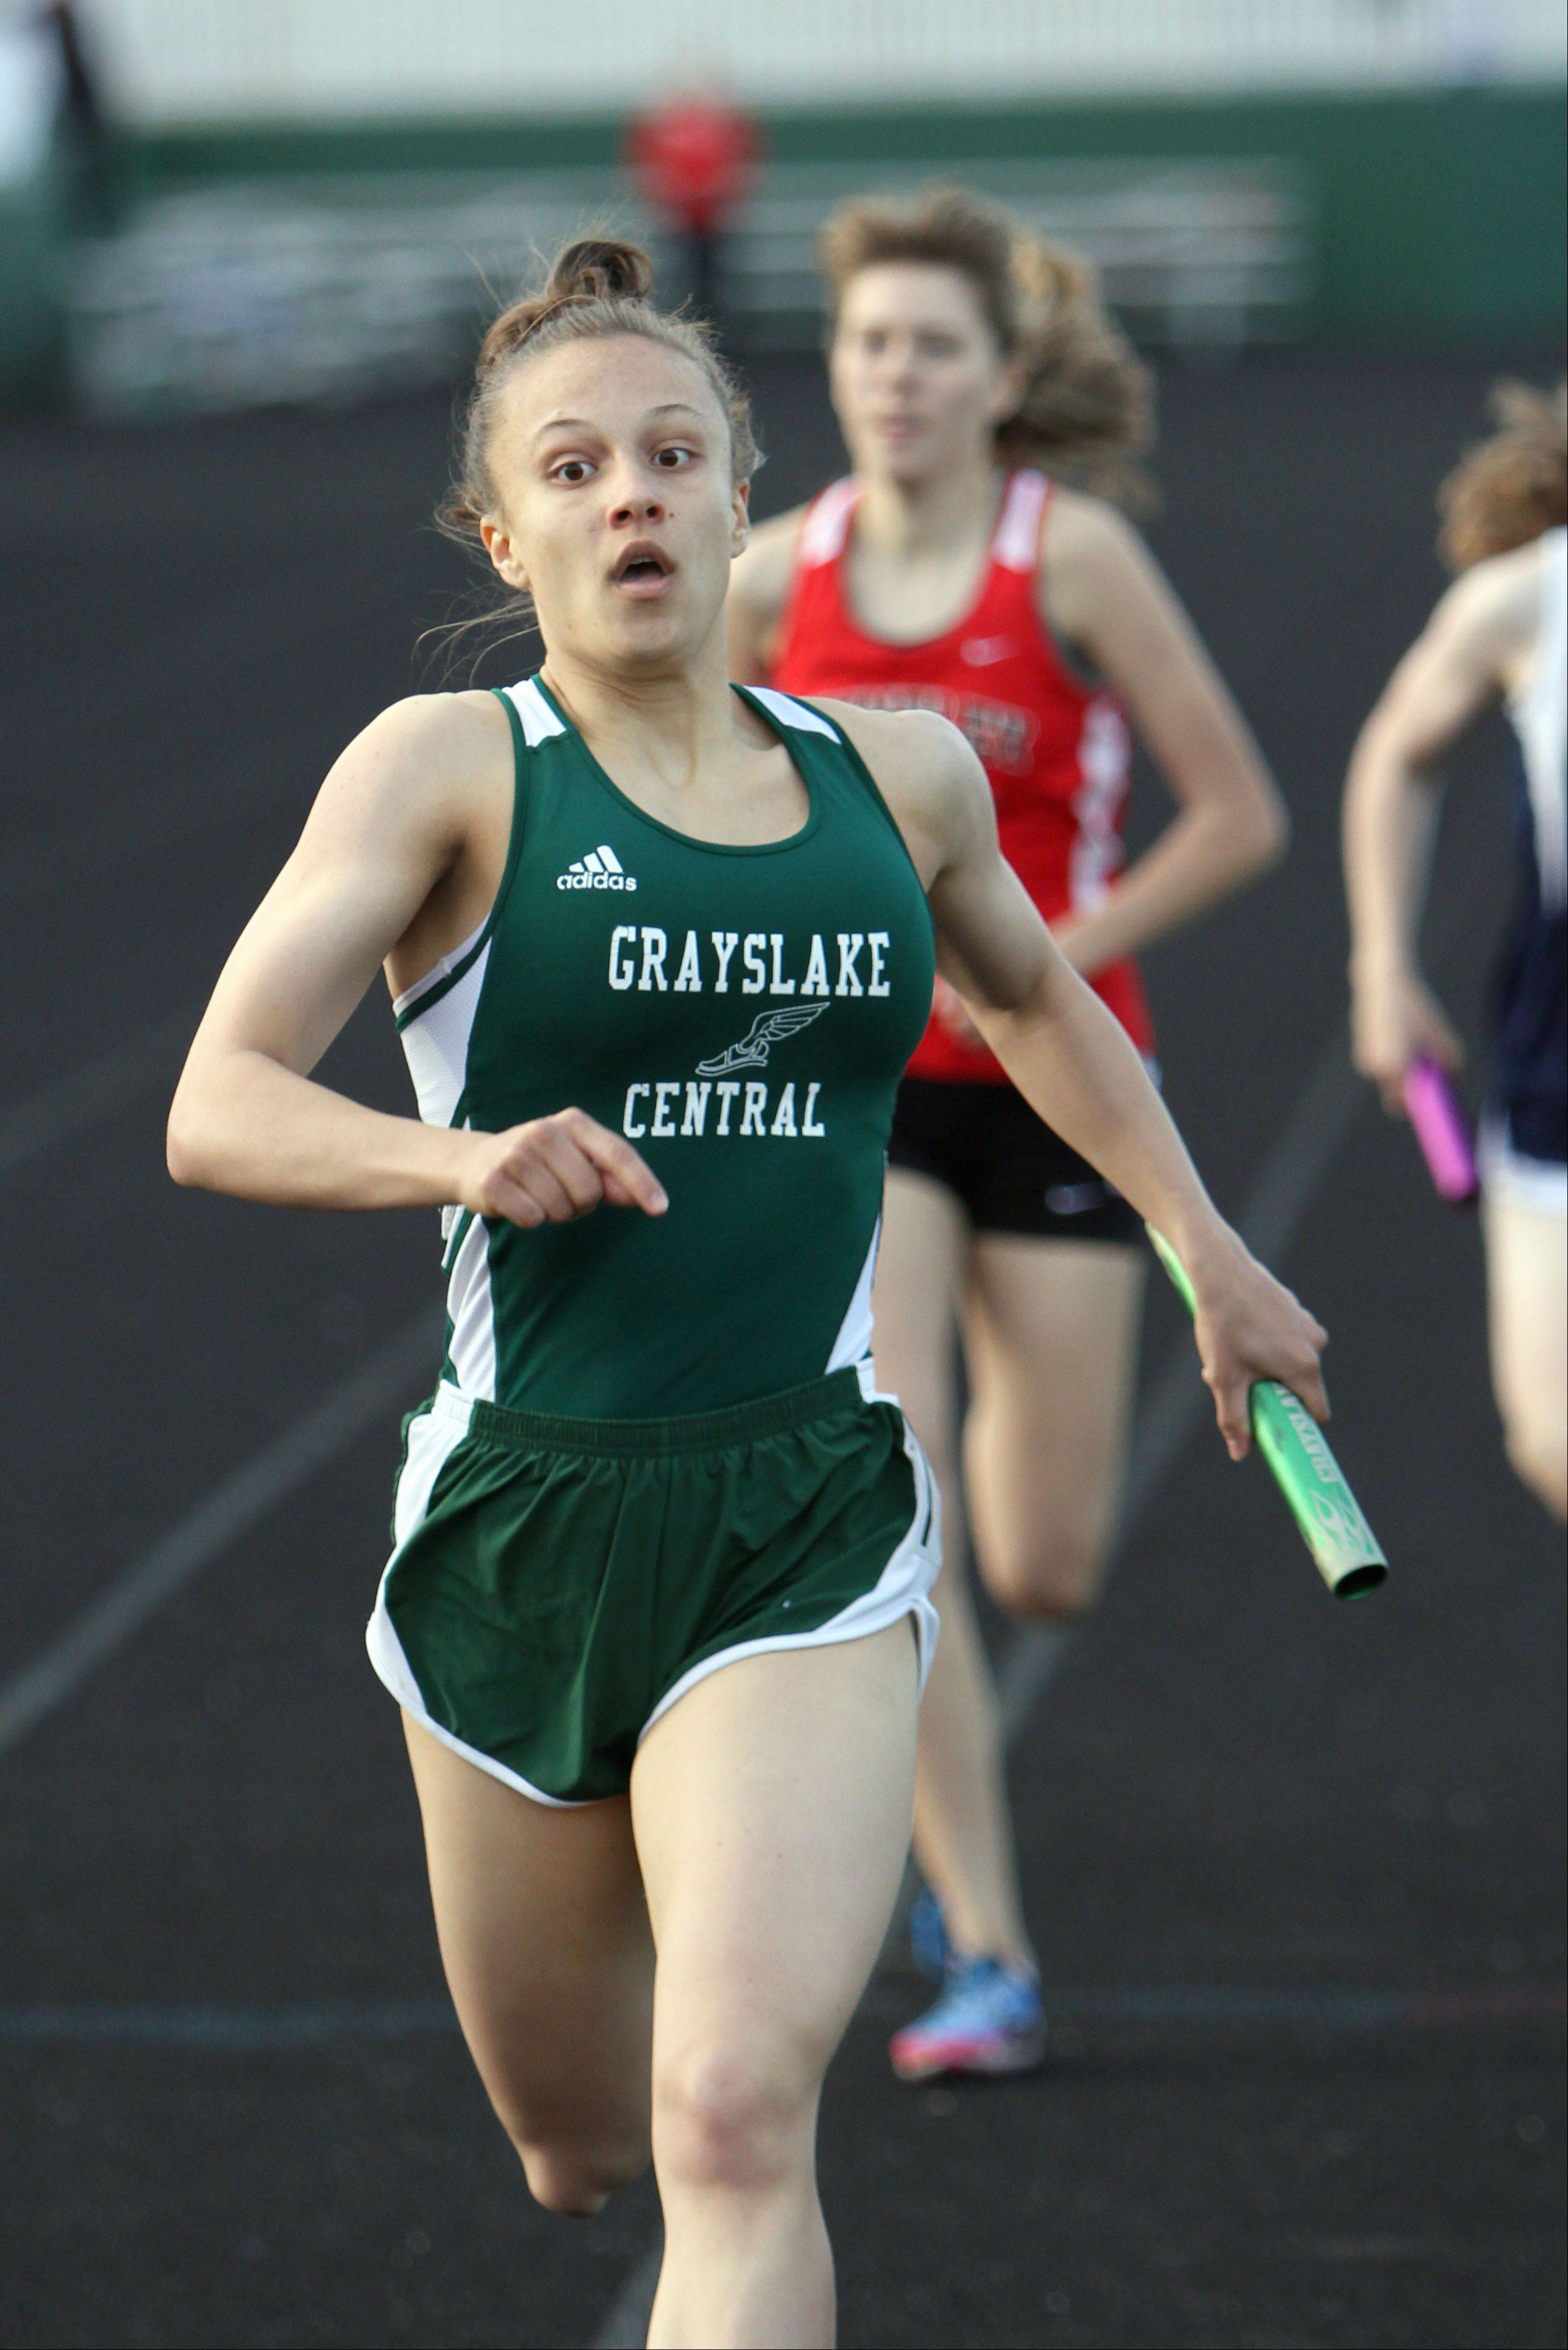 Grayslake Central's Claire Haggerty powers to the finish line in the 3,200-meter relay during the Fox Valley Conference girls track meet Monday at Grayslake Central High School.